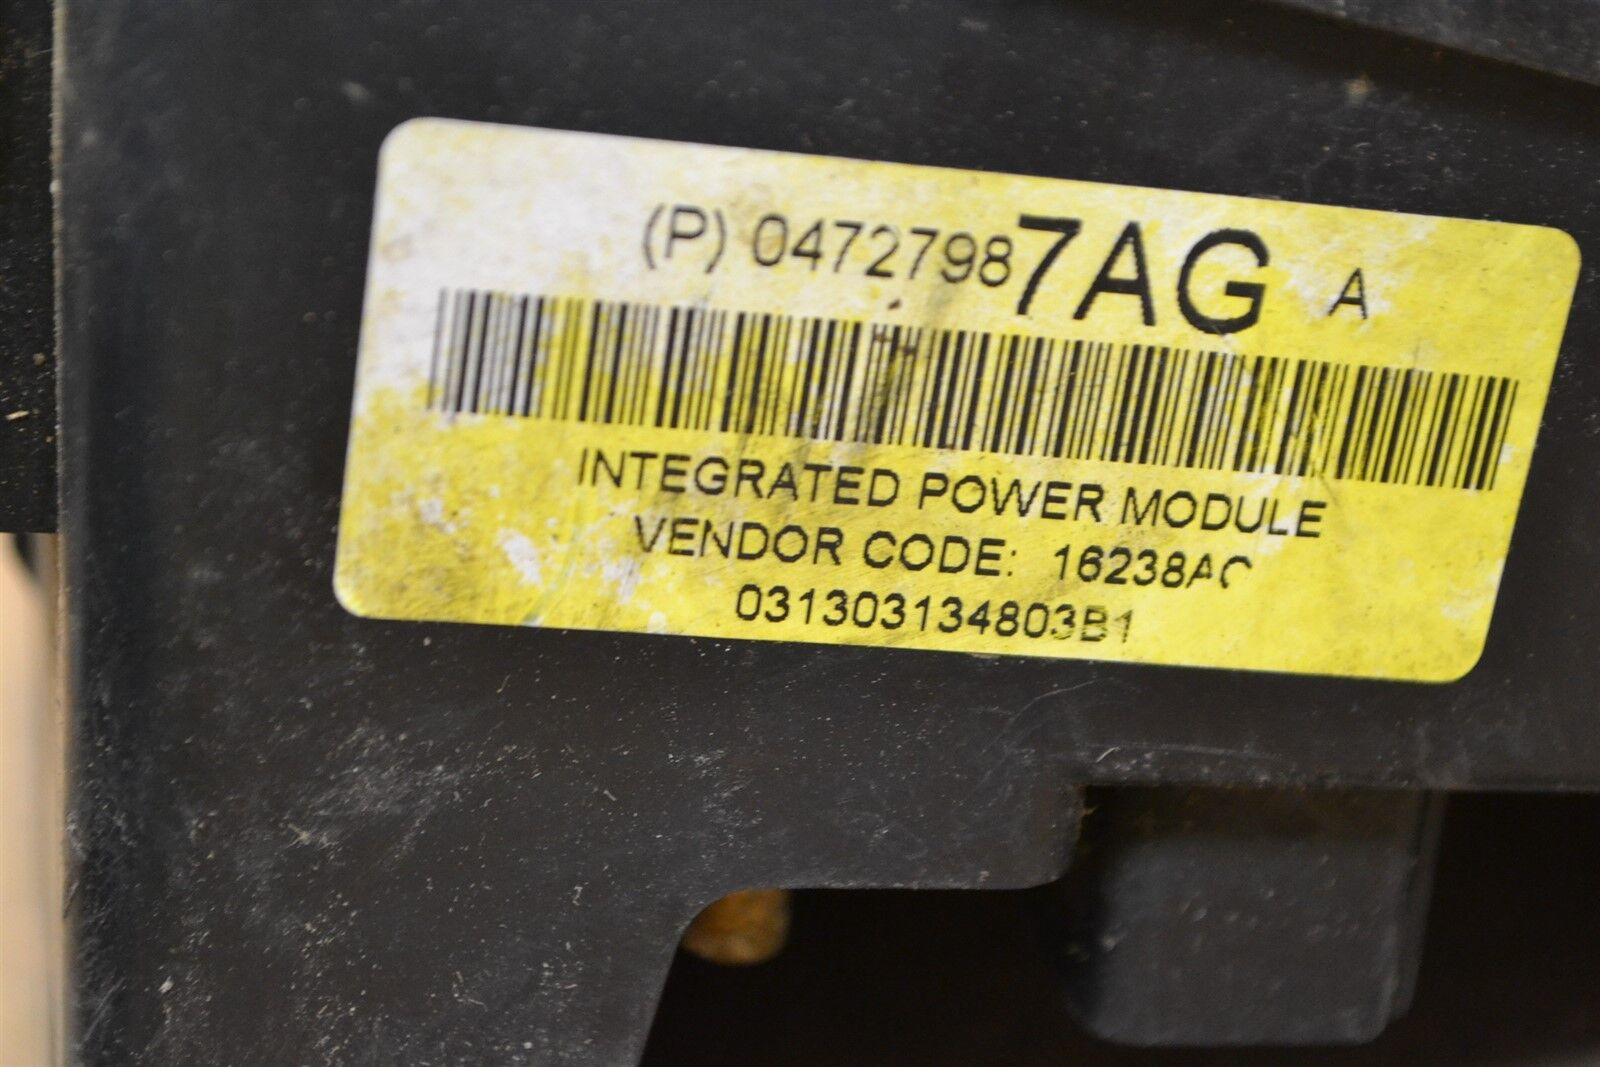 Used 2004 Chrysler Pacifica Computers Chips Cruise Control And 2005 Fuse Box Junction Oem P04727987ag Module 894 7e6